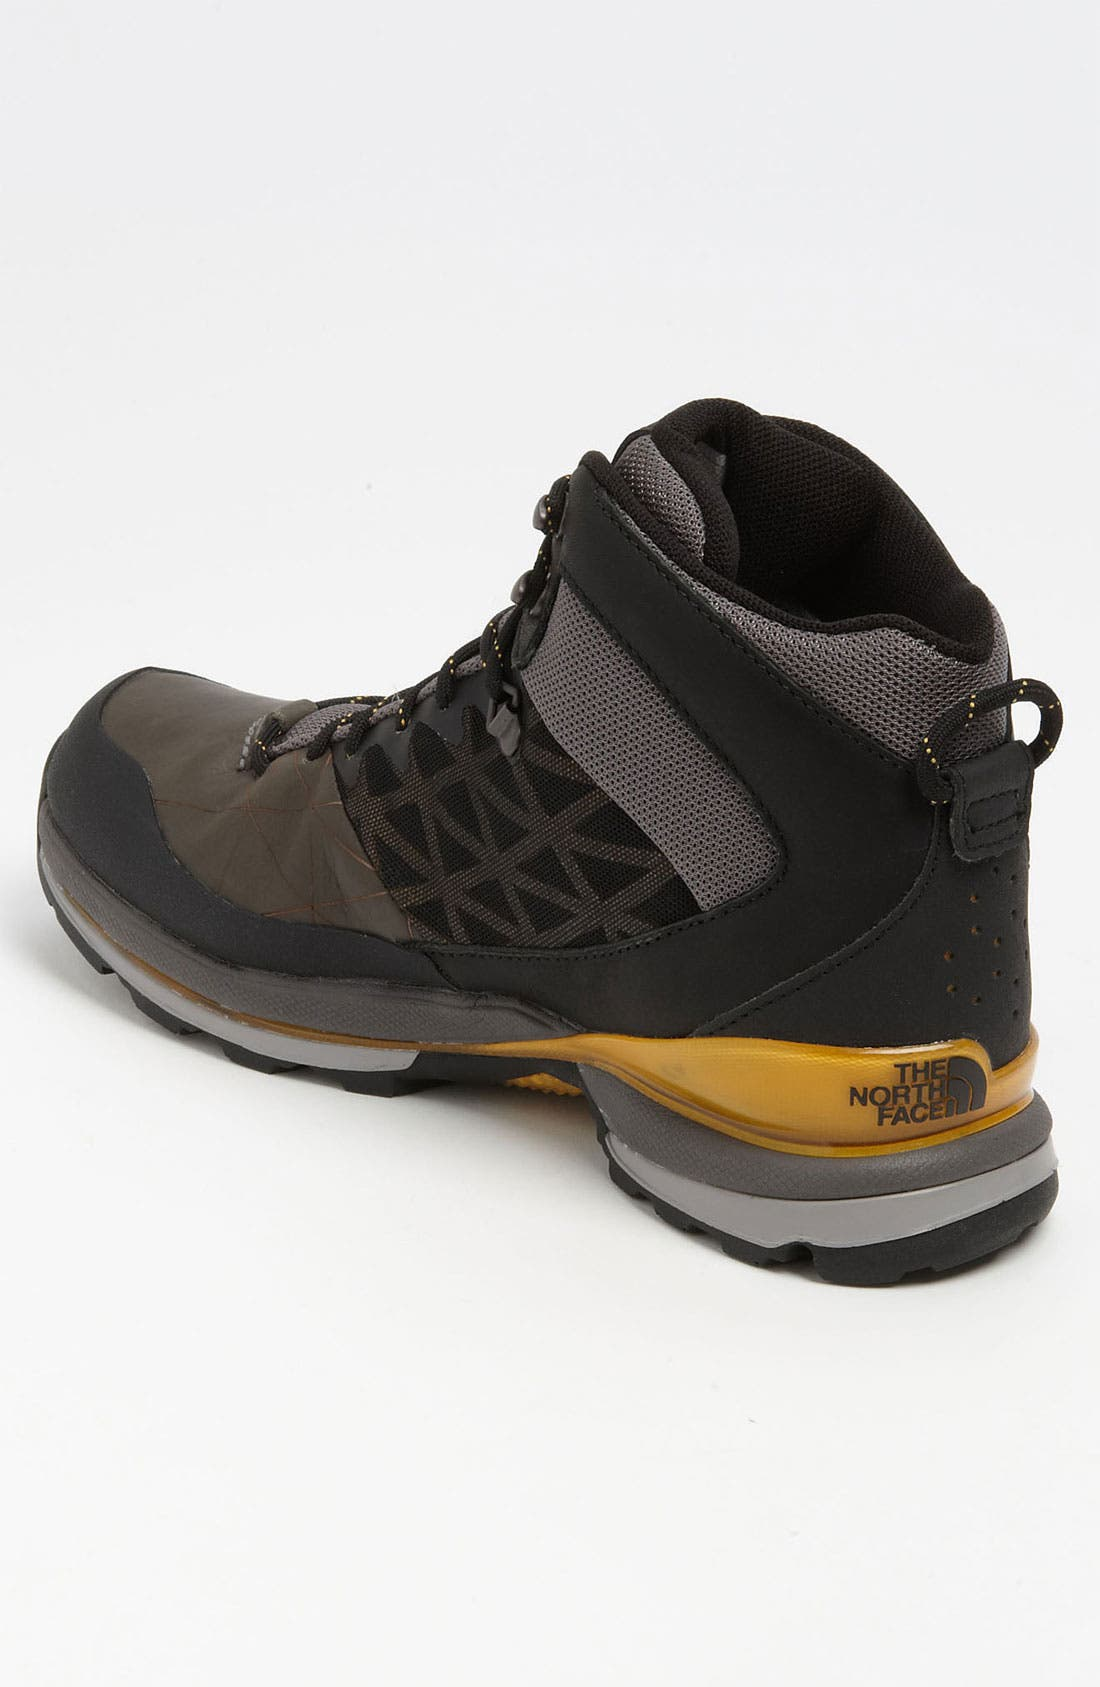 Alternate Image 2  - The North Face 'Havoc Mid' Hiking Boot